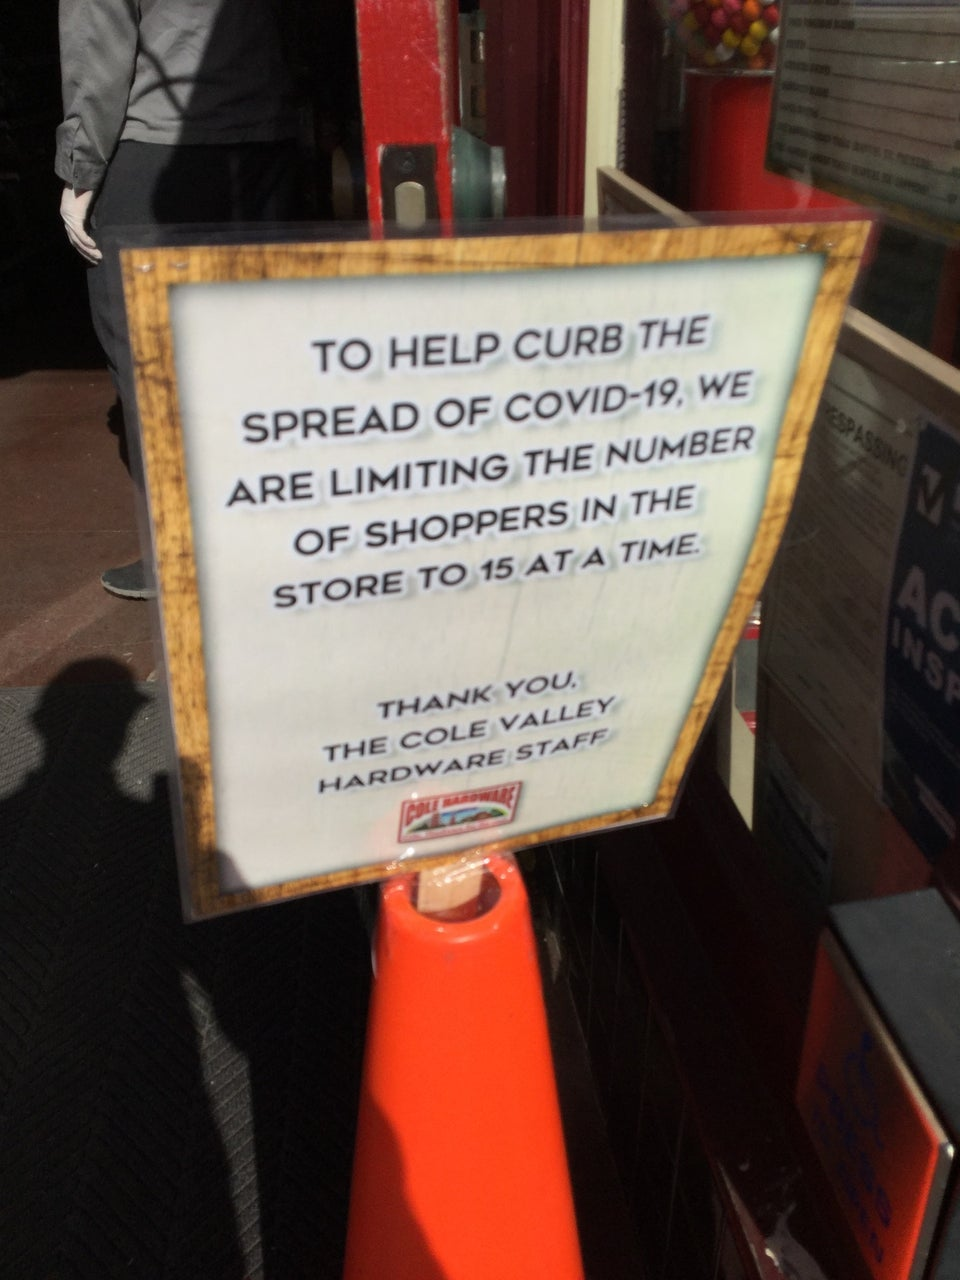 Sign in front of a store entrance with text TO HELP CURBE THE SPREAD OF COVID-19, WE ARE LIMITING THE NUMBER OF SHOPPERS IN THE STORE TO 15 AT A TIME. THANK YOU, THE COLE VALLEY HARDWARE STAFF.